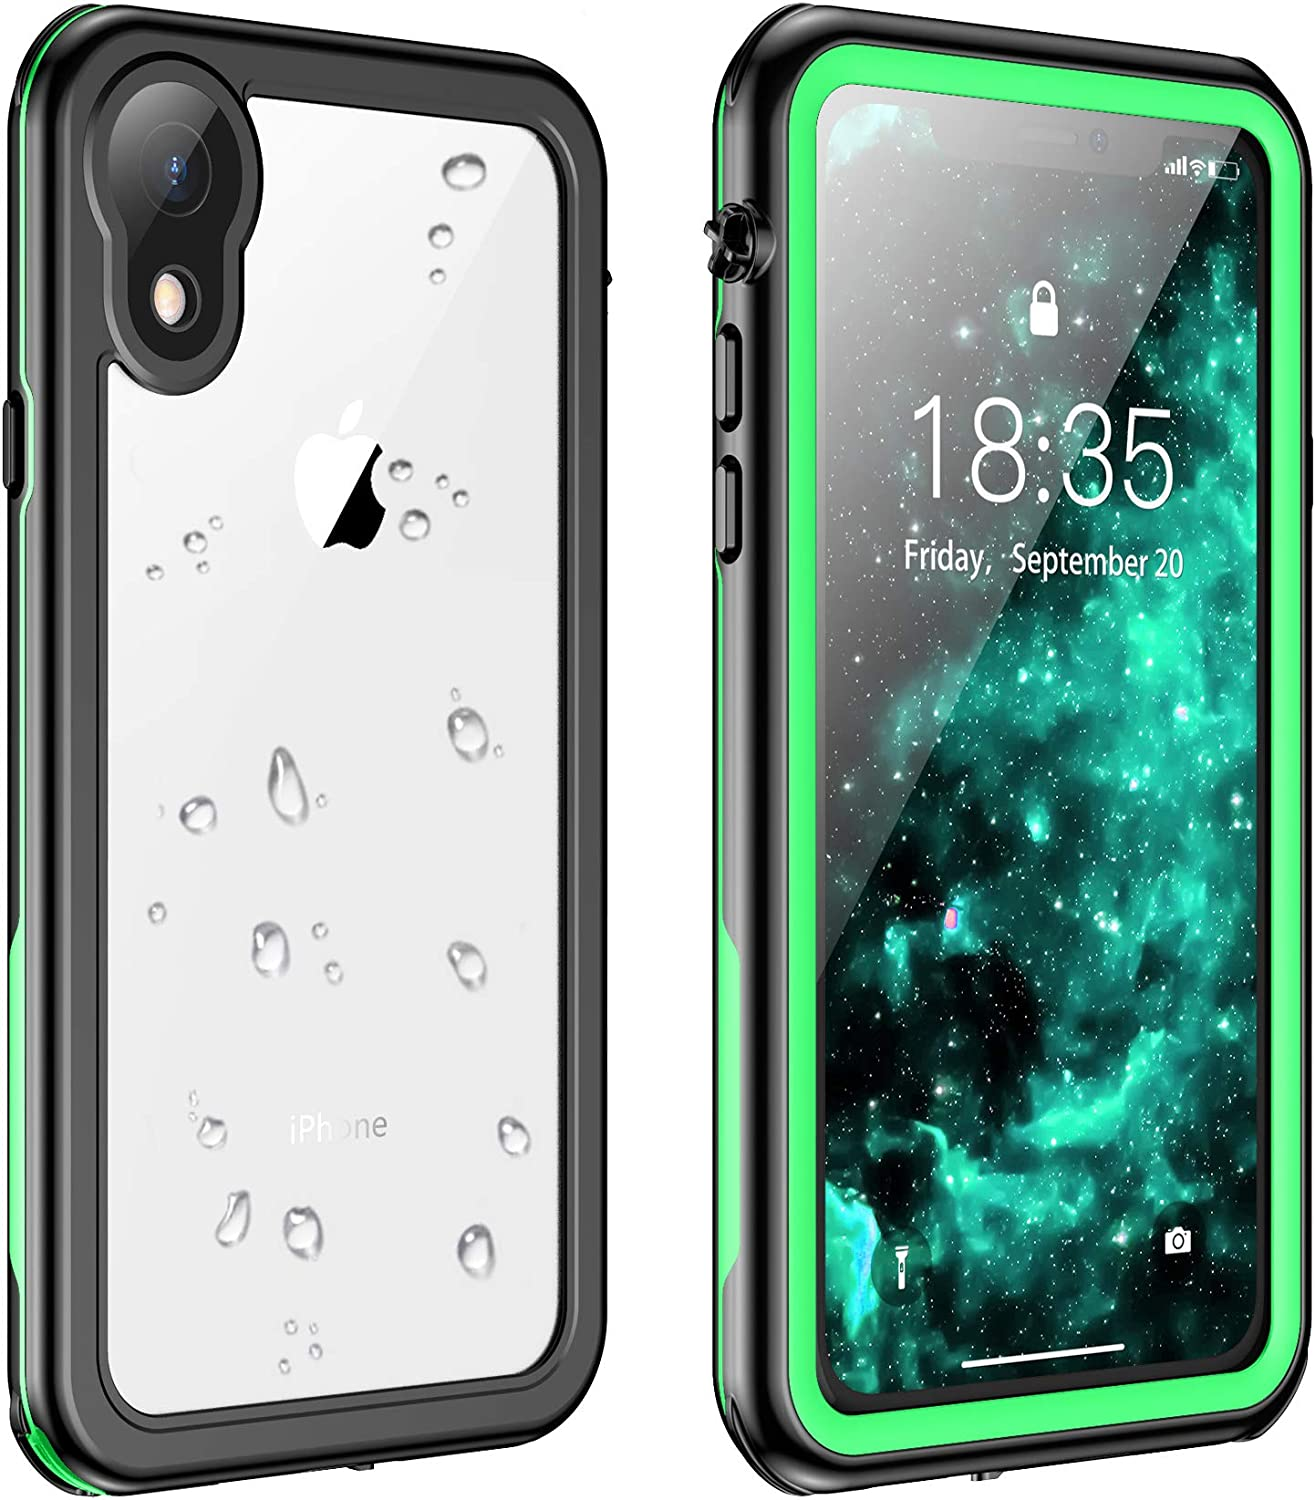 Justcool for iPhone XR Case Waterproof, Full Body with Built-in Screen Protector Rugged Clear Case for iPhone XR 6.1 inch (Green/Clear)